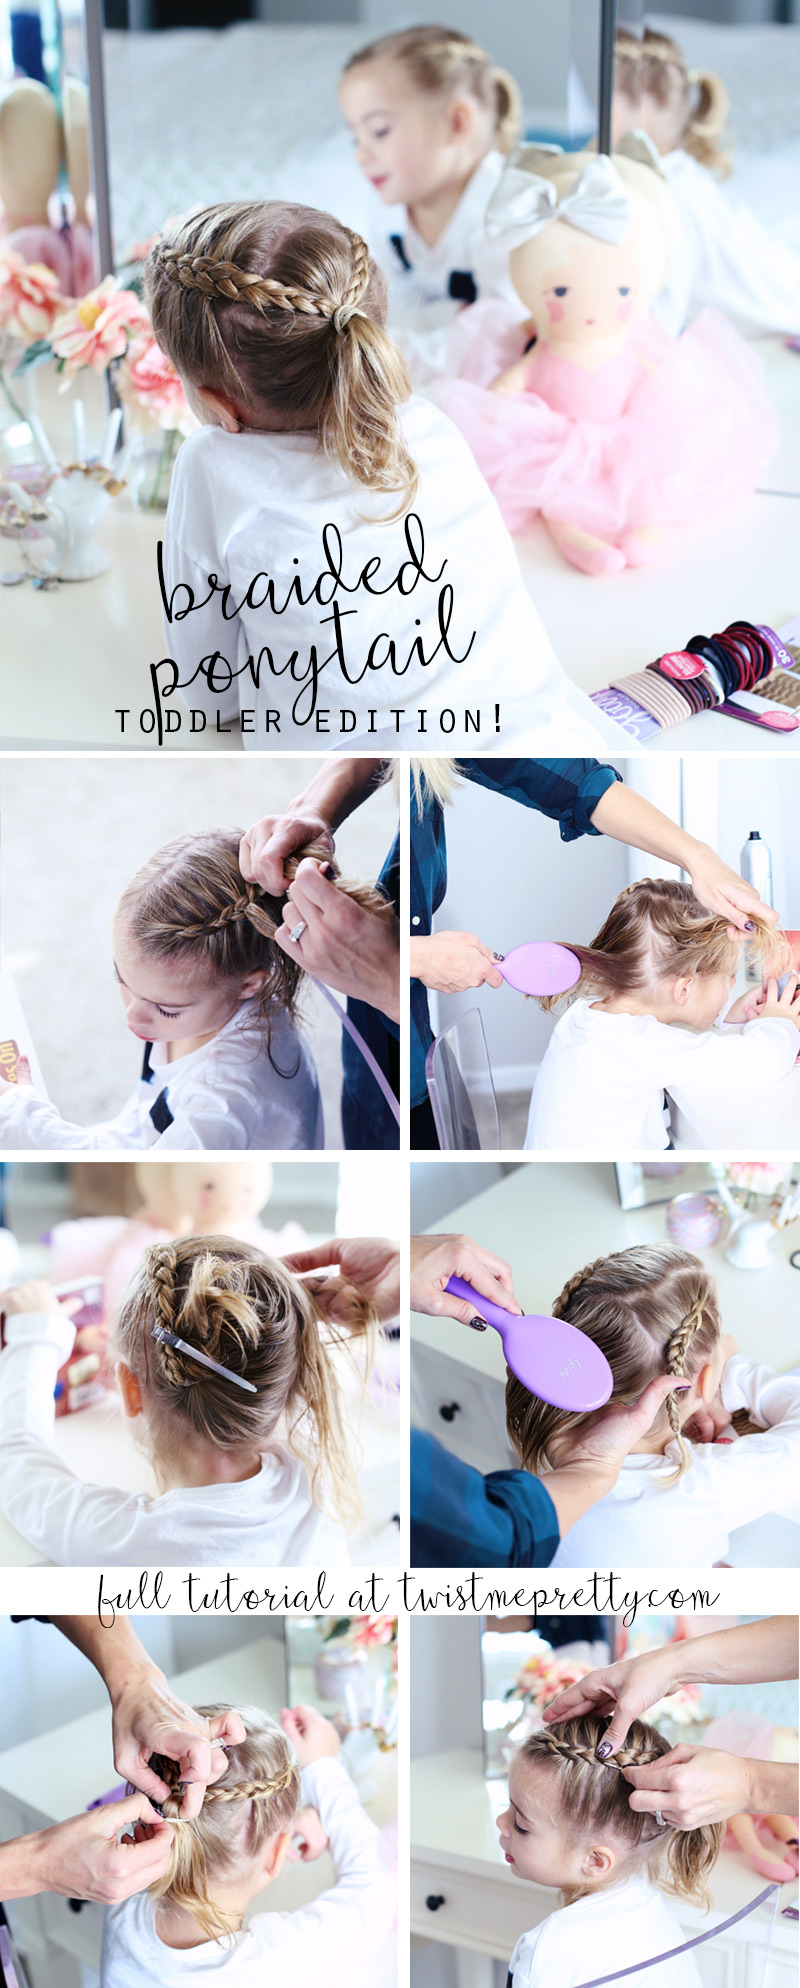 Twist Me Pretty - Our Morning Routine. Braided Pony Tail - Toddler edition tutorial